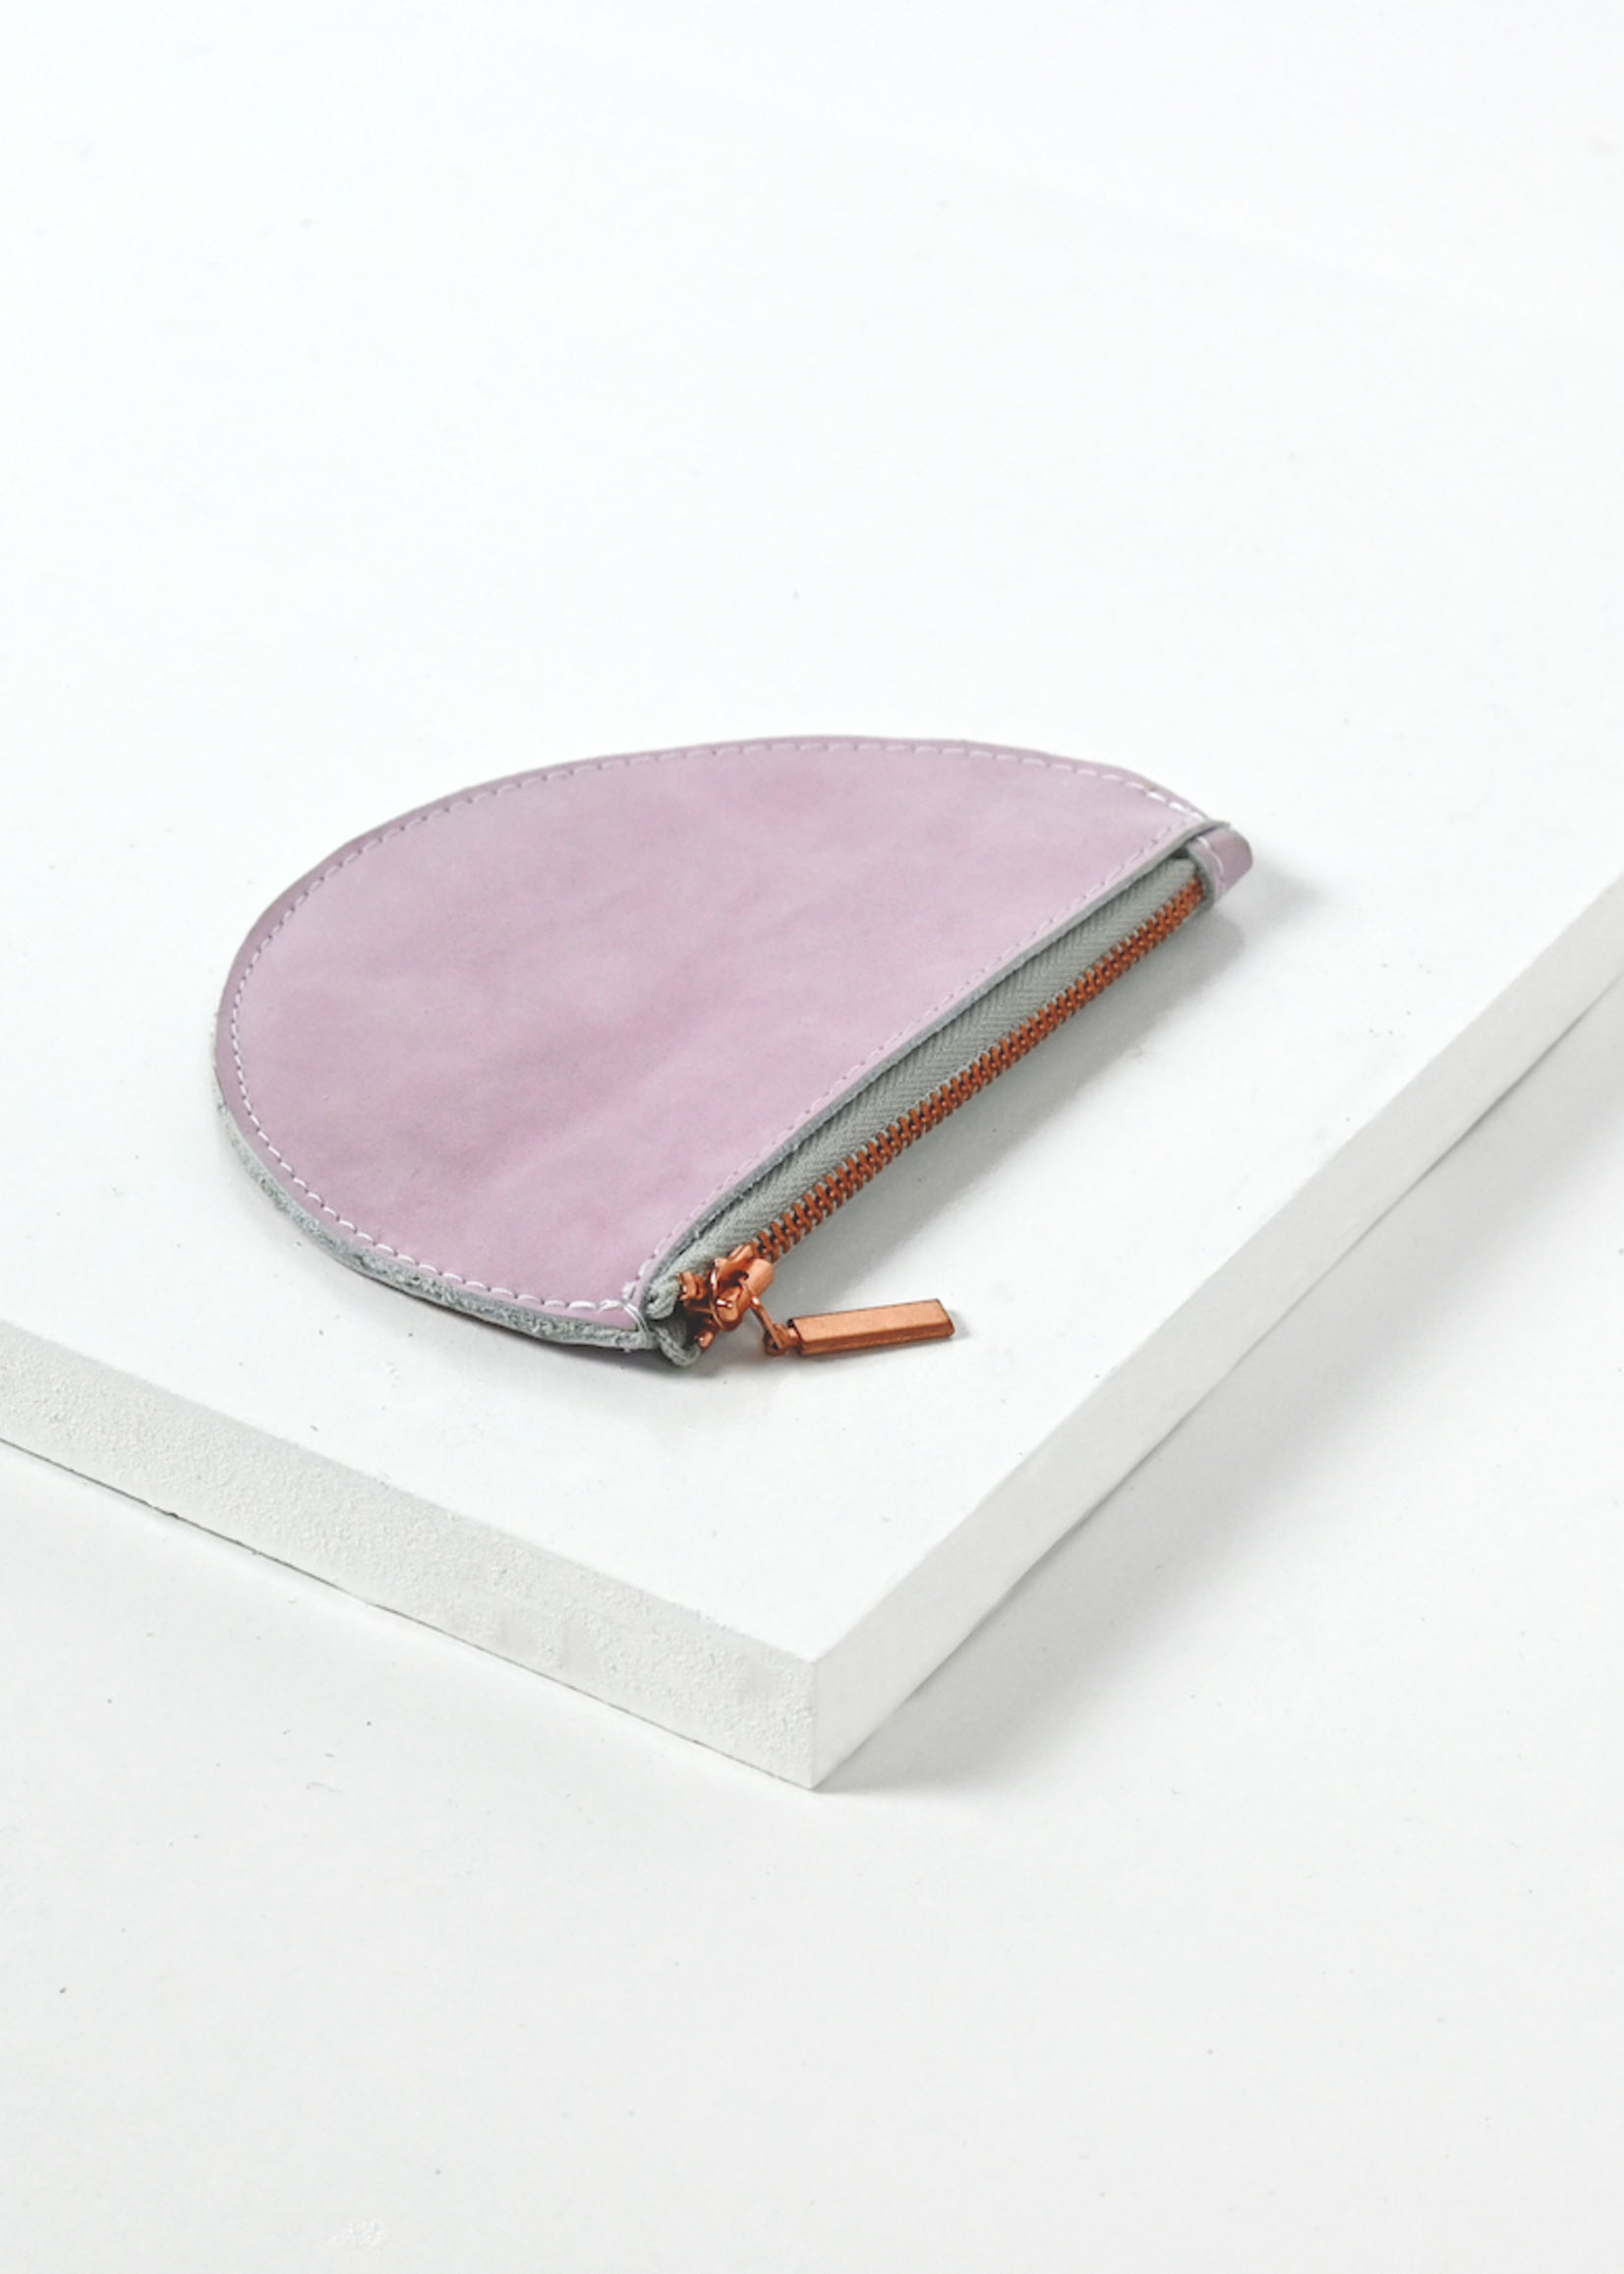 Mood Silly Mood leather wallet pink